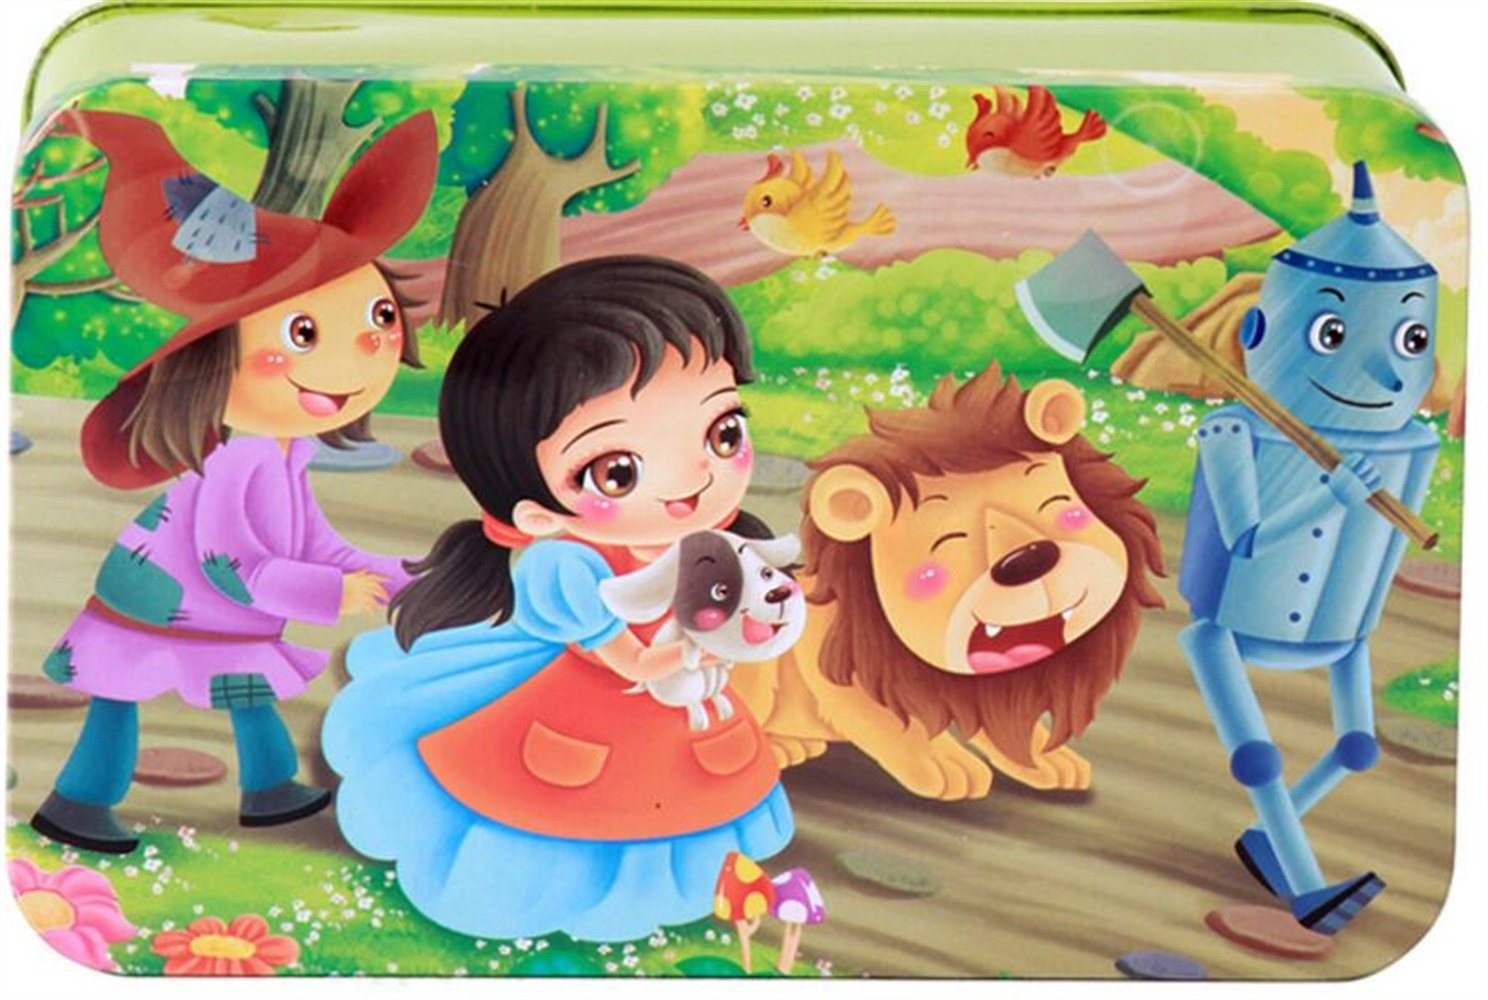 Chusea Interesting Jigsaw Puzzles Wooden Picture Puzzle Early Learning Toy Fantastic Gifts For Kids(The Wizard of Oz)